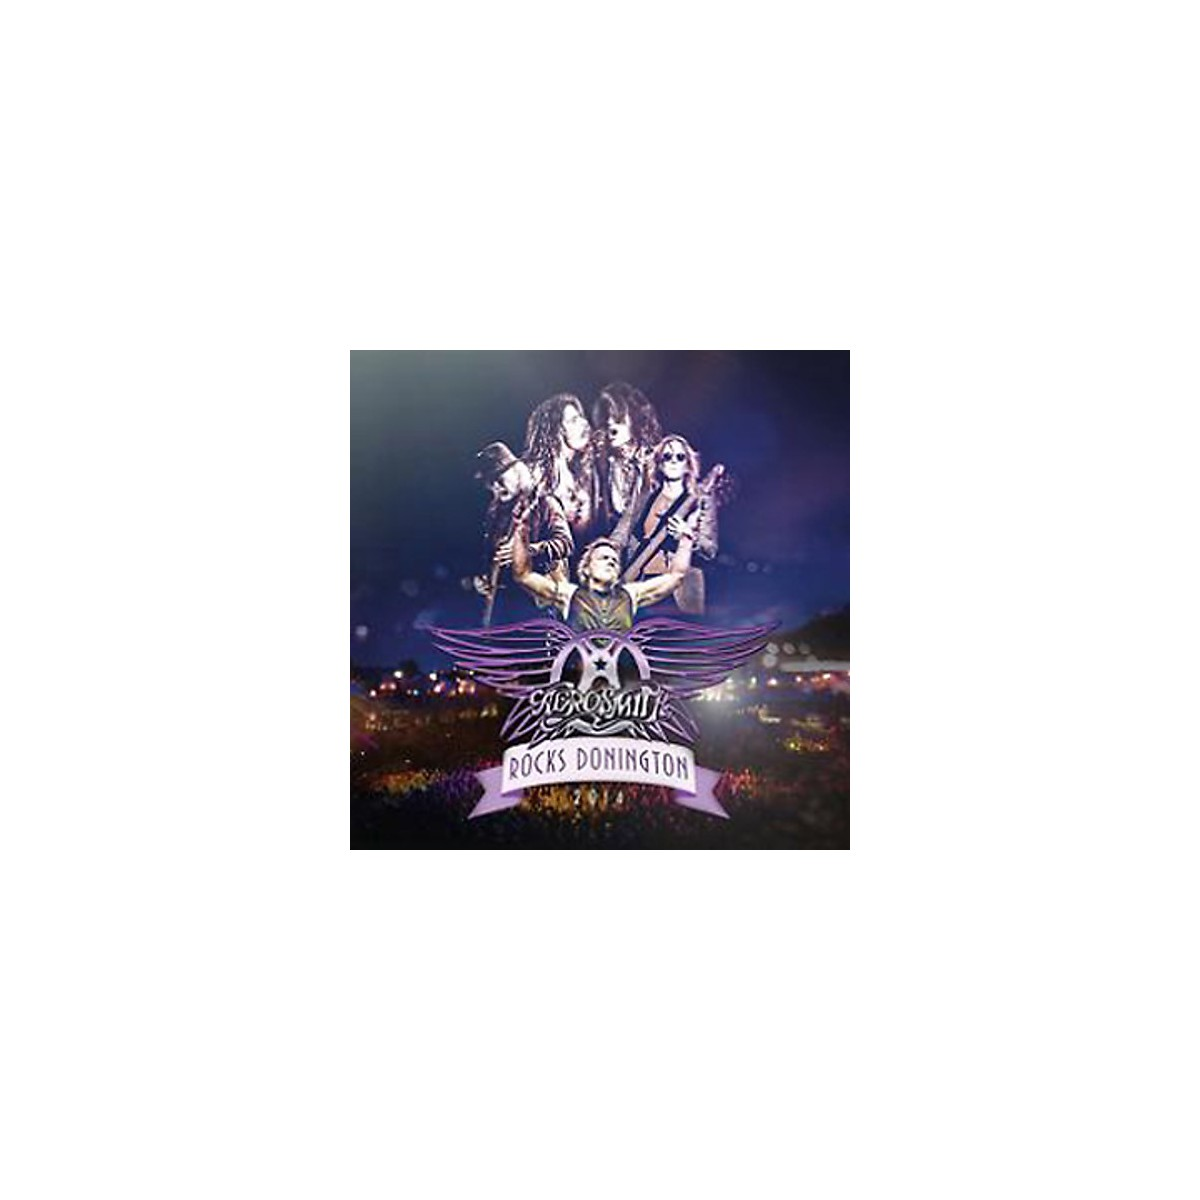 Alliance Aerosmith - Rocks Donington 2014 [3LP/DVD] [Limited Edition]